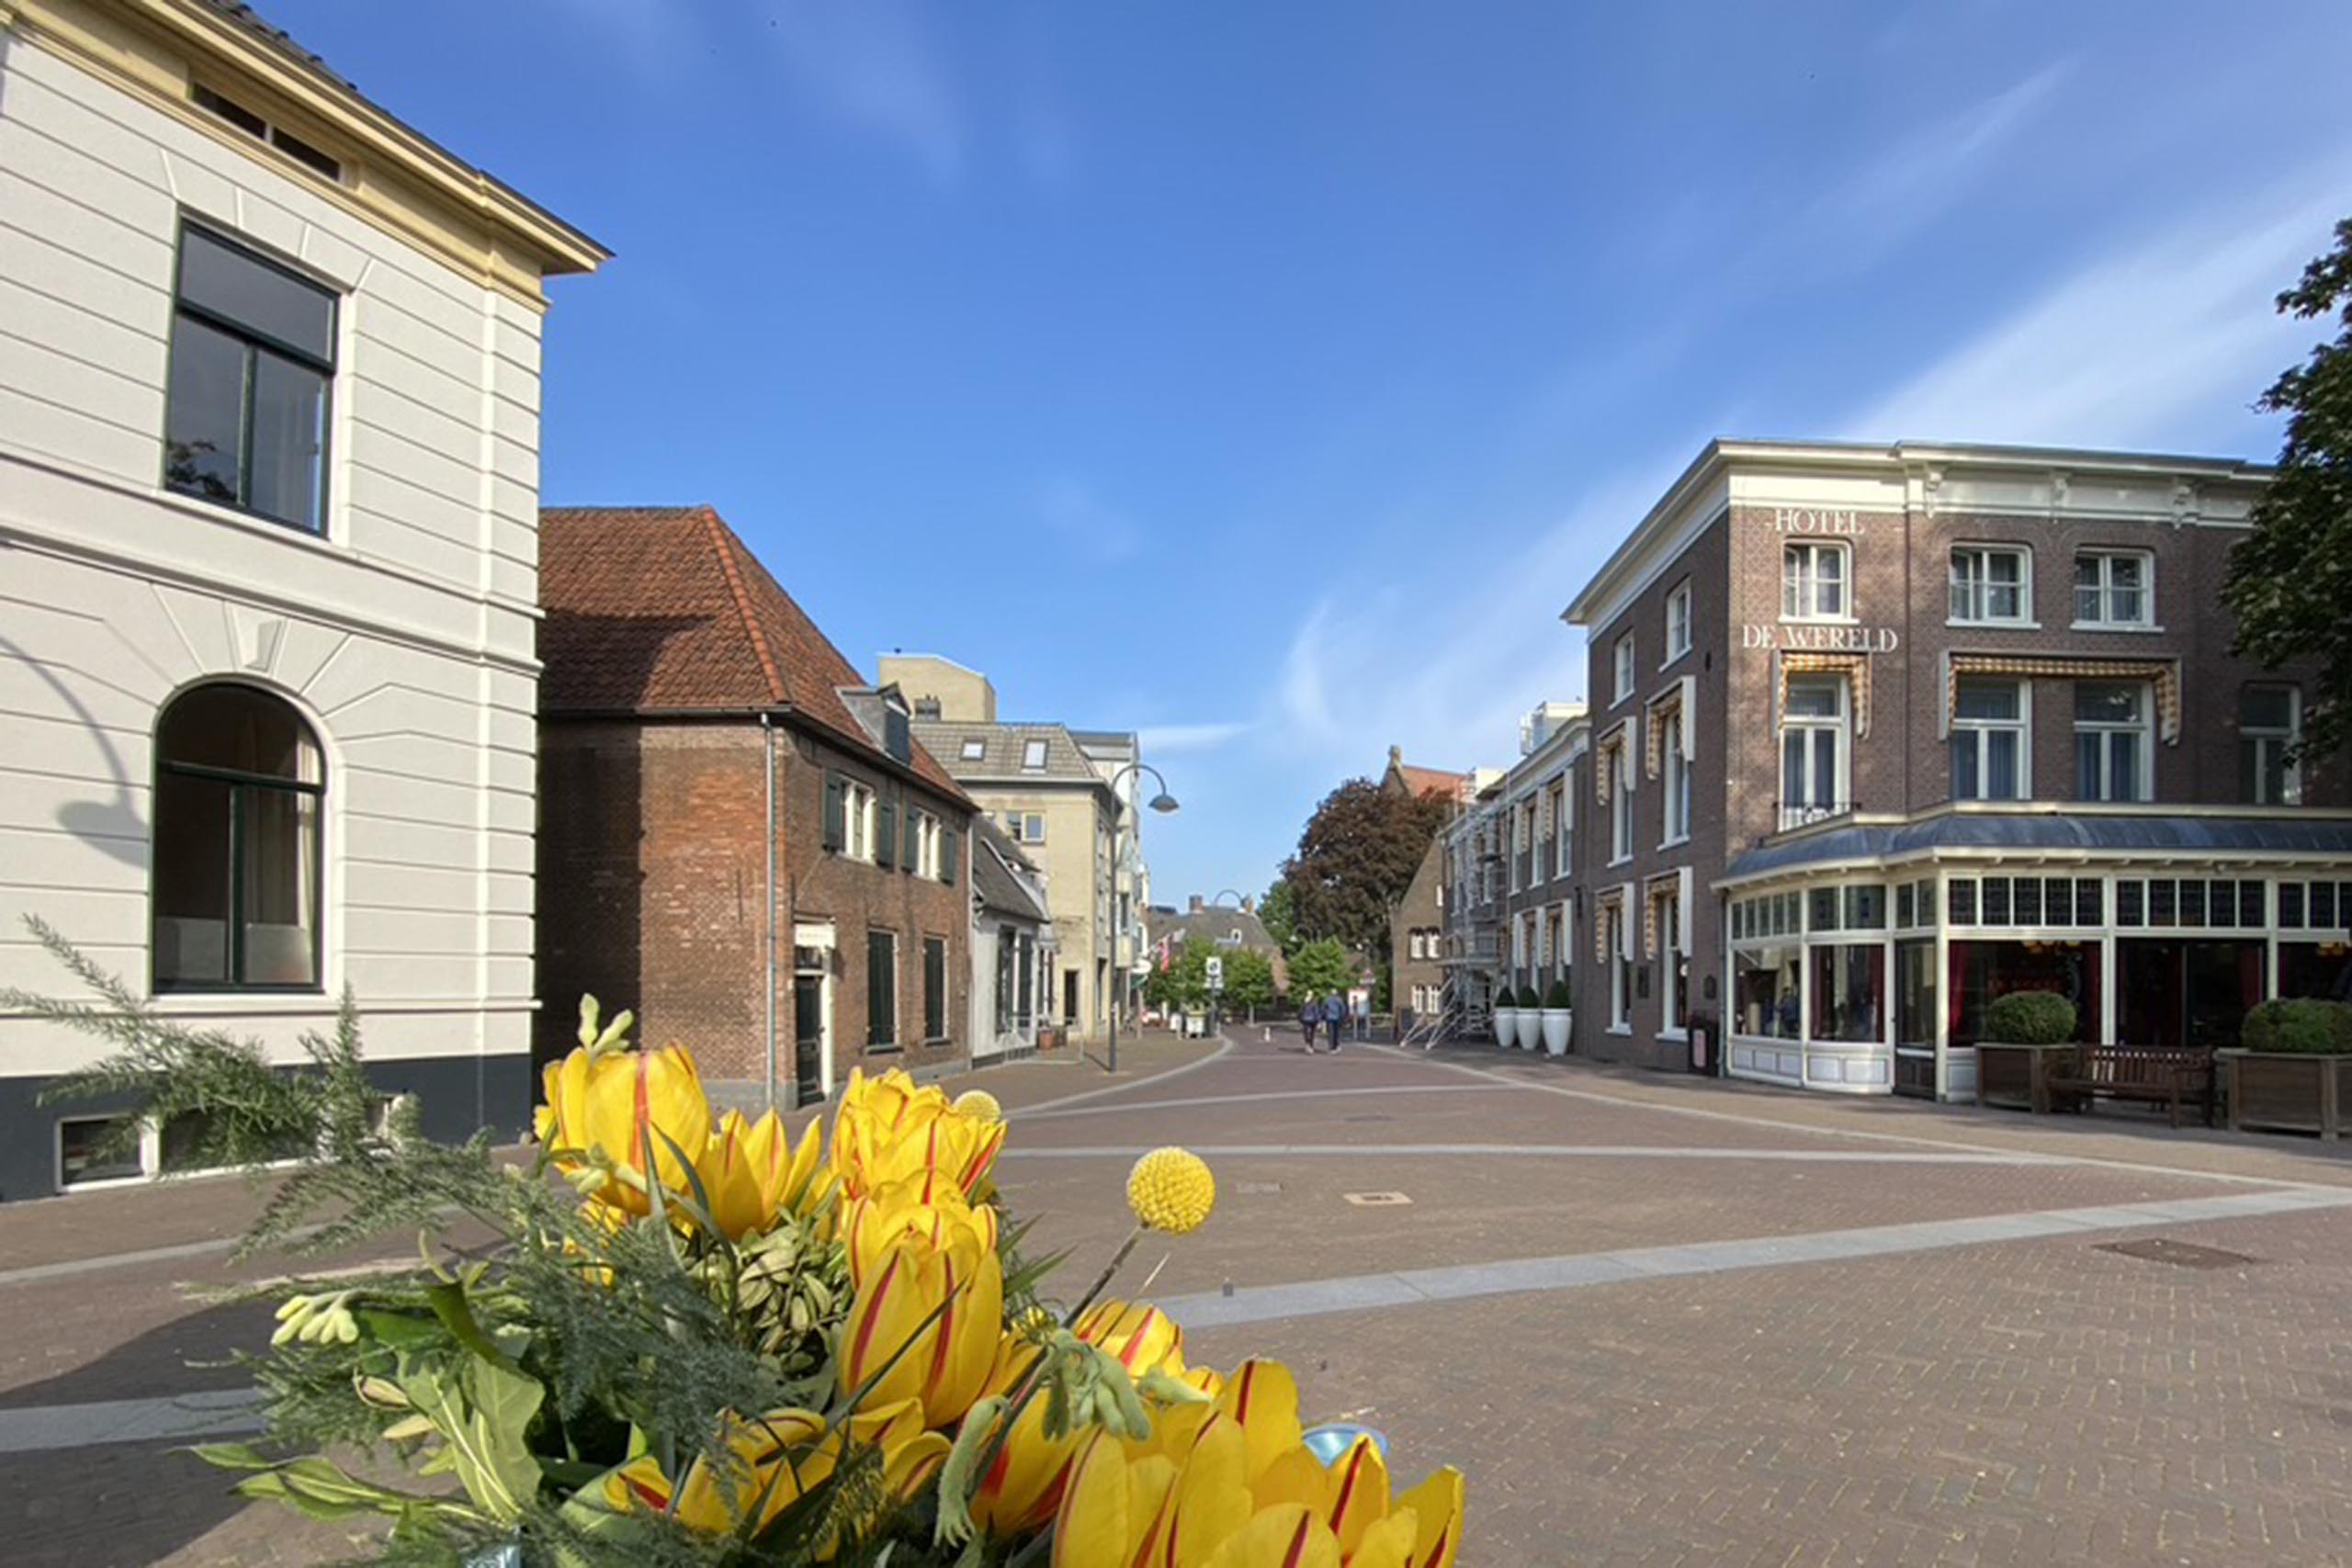 5 Mei plein Wageningen - Short Stay Wageningen